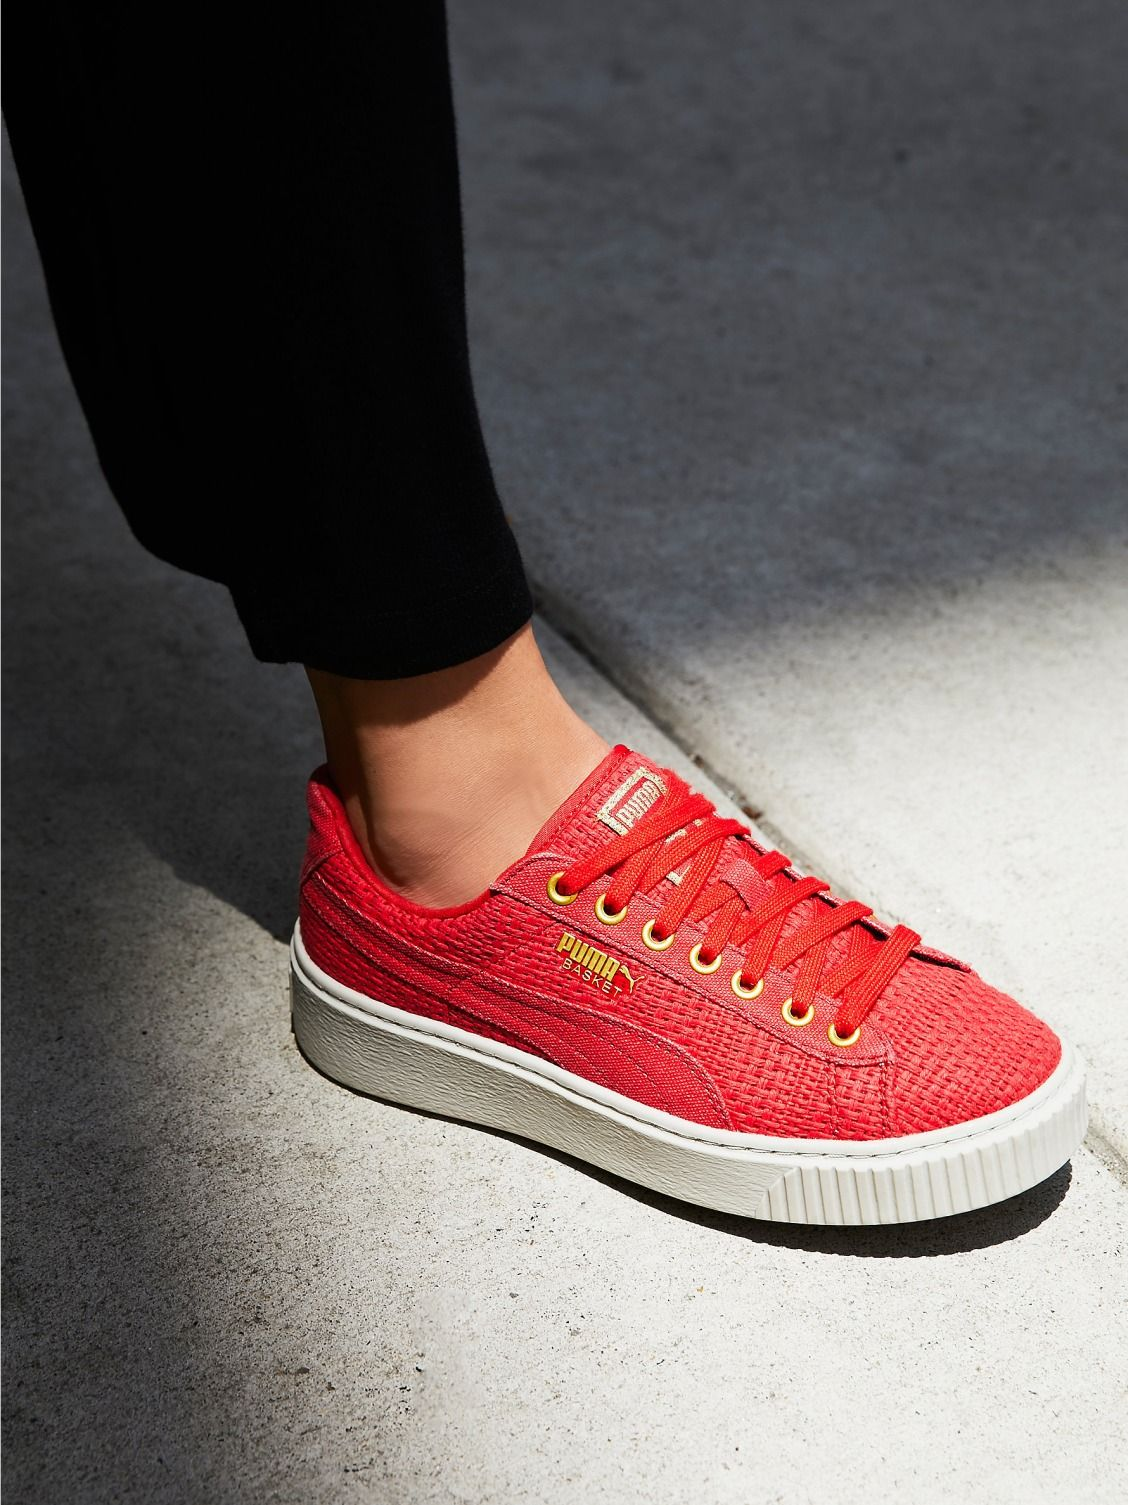 6d5a8c637c5f Puma Basket Platform Woven Sneaker at Free People Clothing Boutique